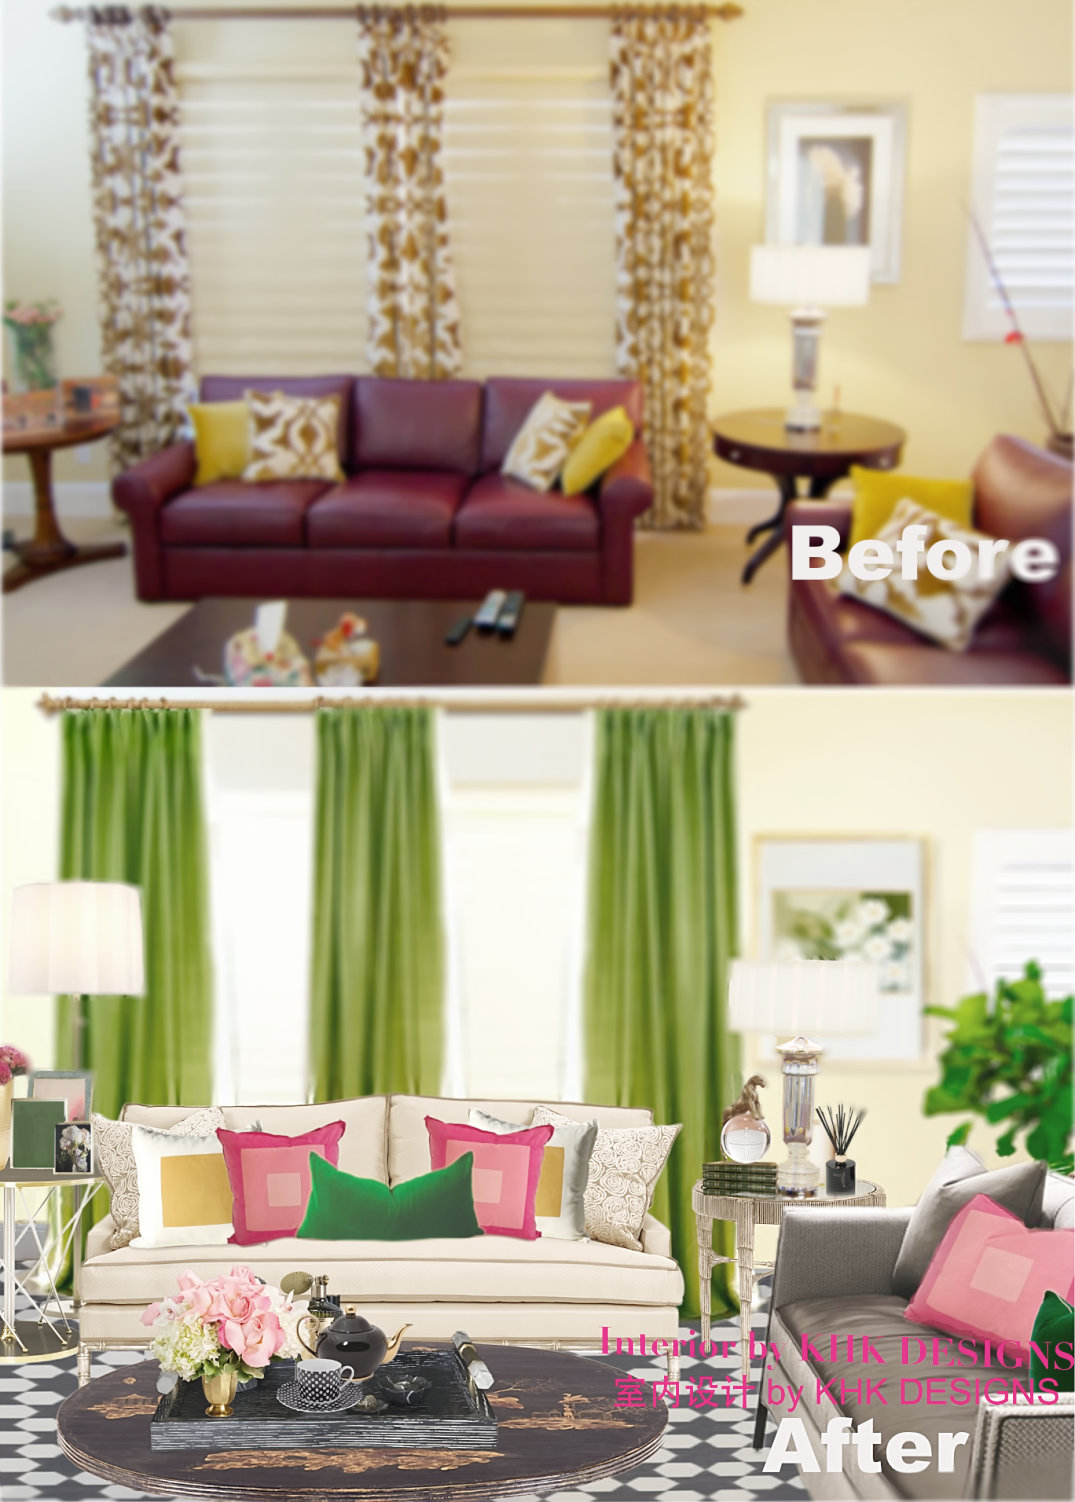 beforeafter-Mrs.ZhangLivingRoom